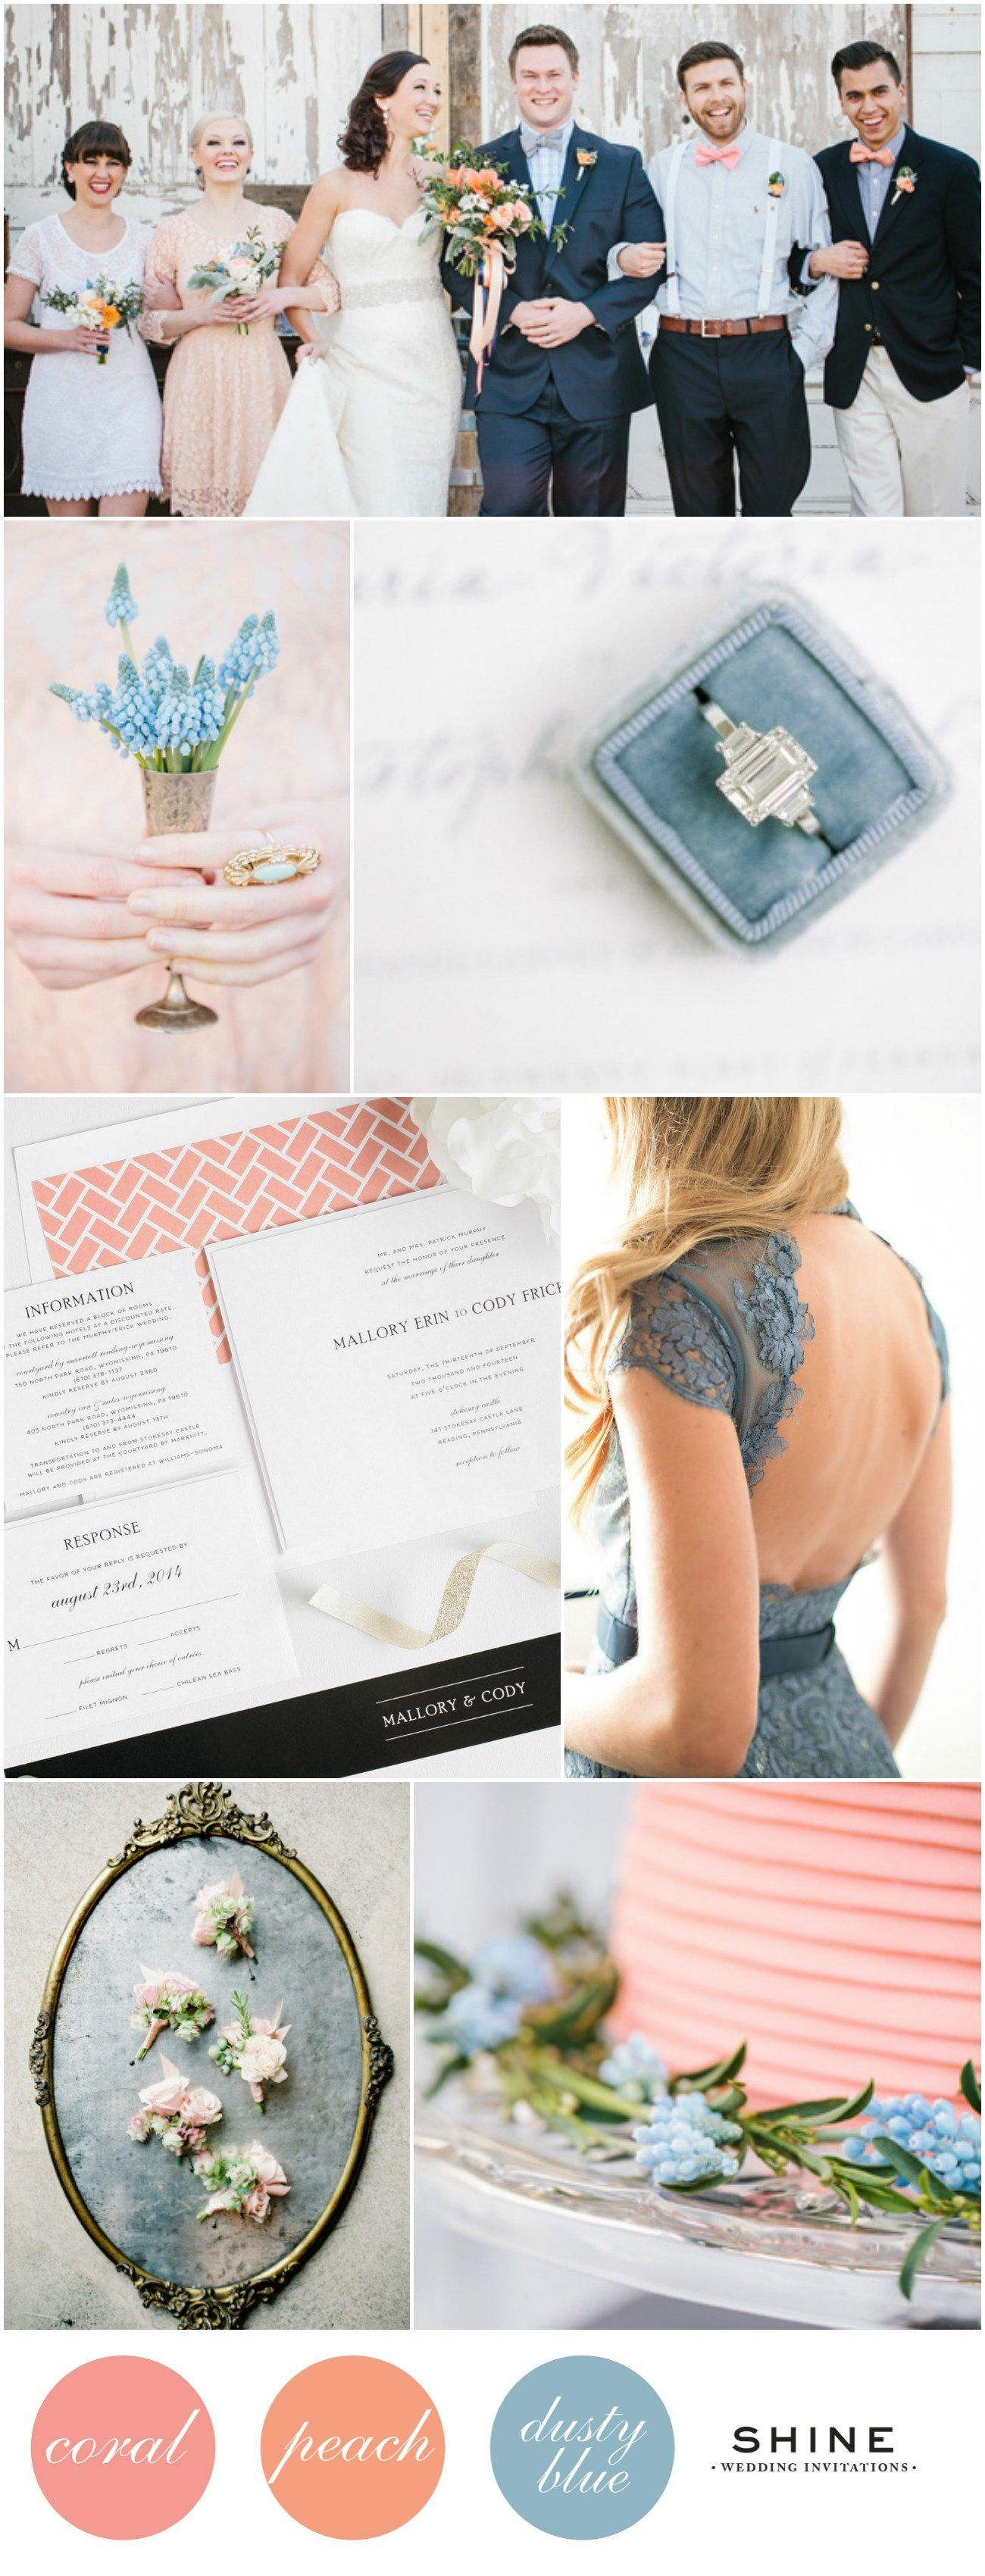 Coral, Peach, and Dusty Blue Wedding Inspiration